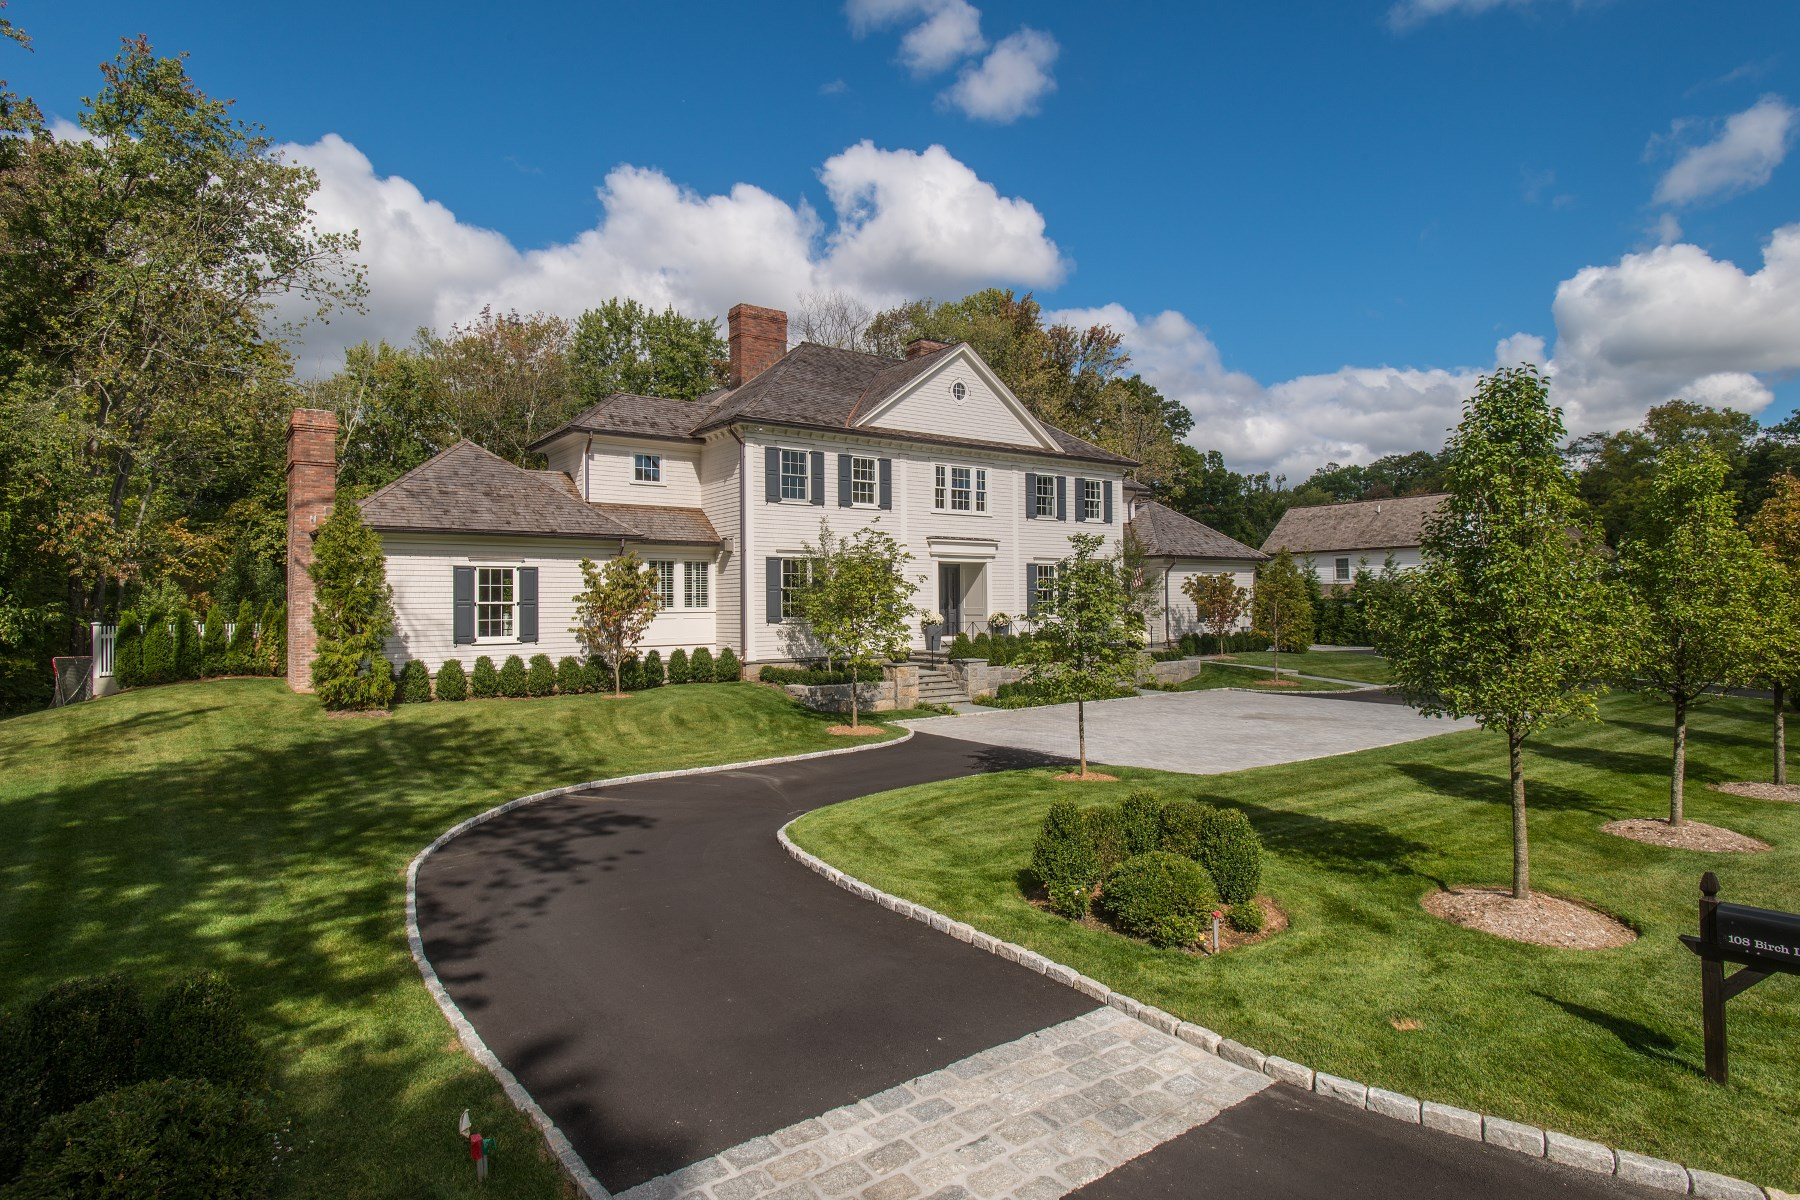 Single Family Home for Sale at Birch Lane 108 Birch Lane South Of Parkway, Greenwich, Connecticut, 06830 United States